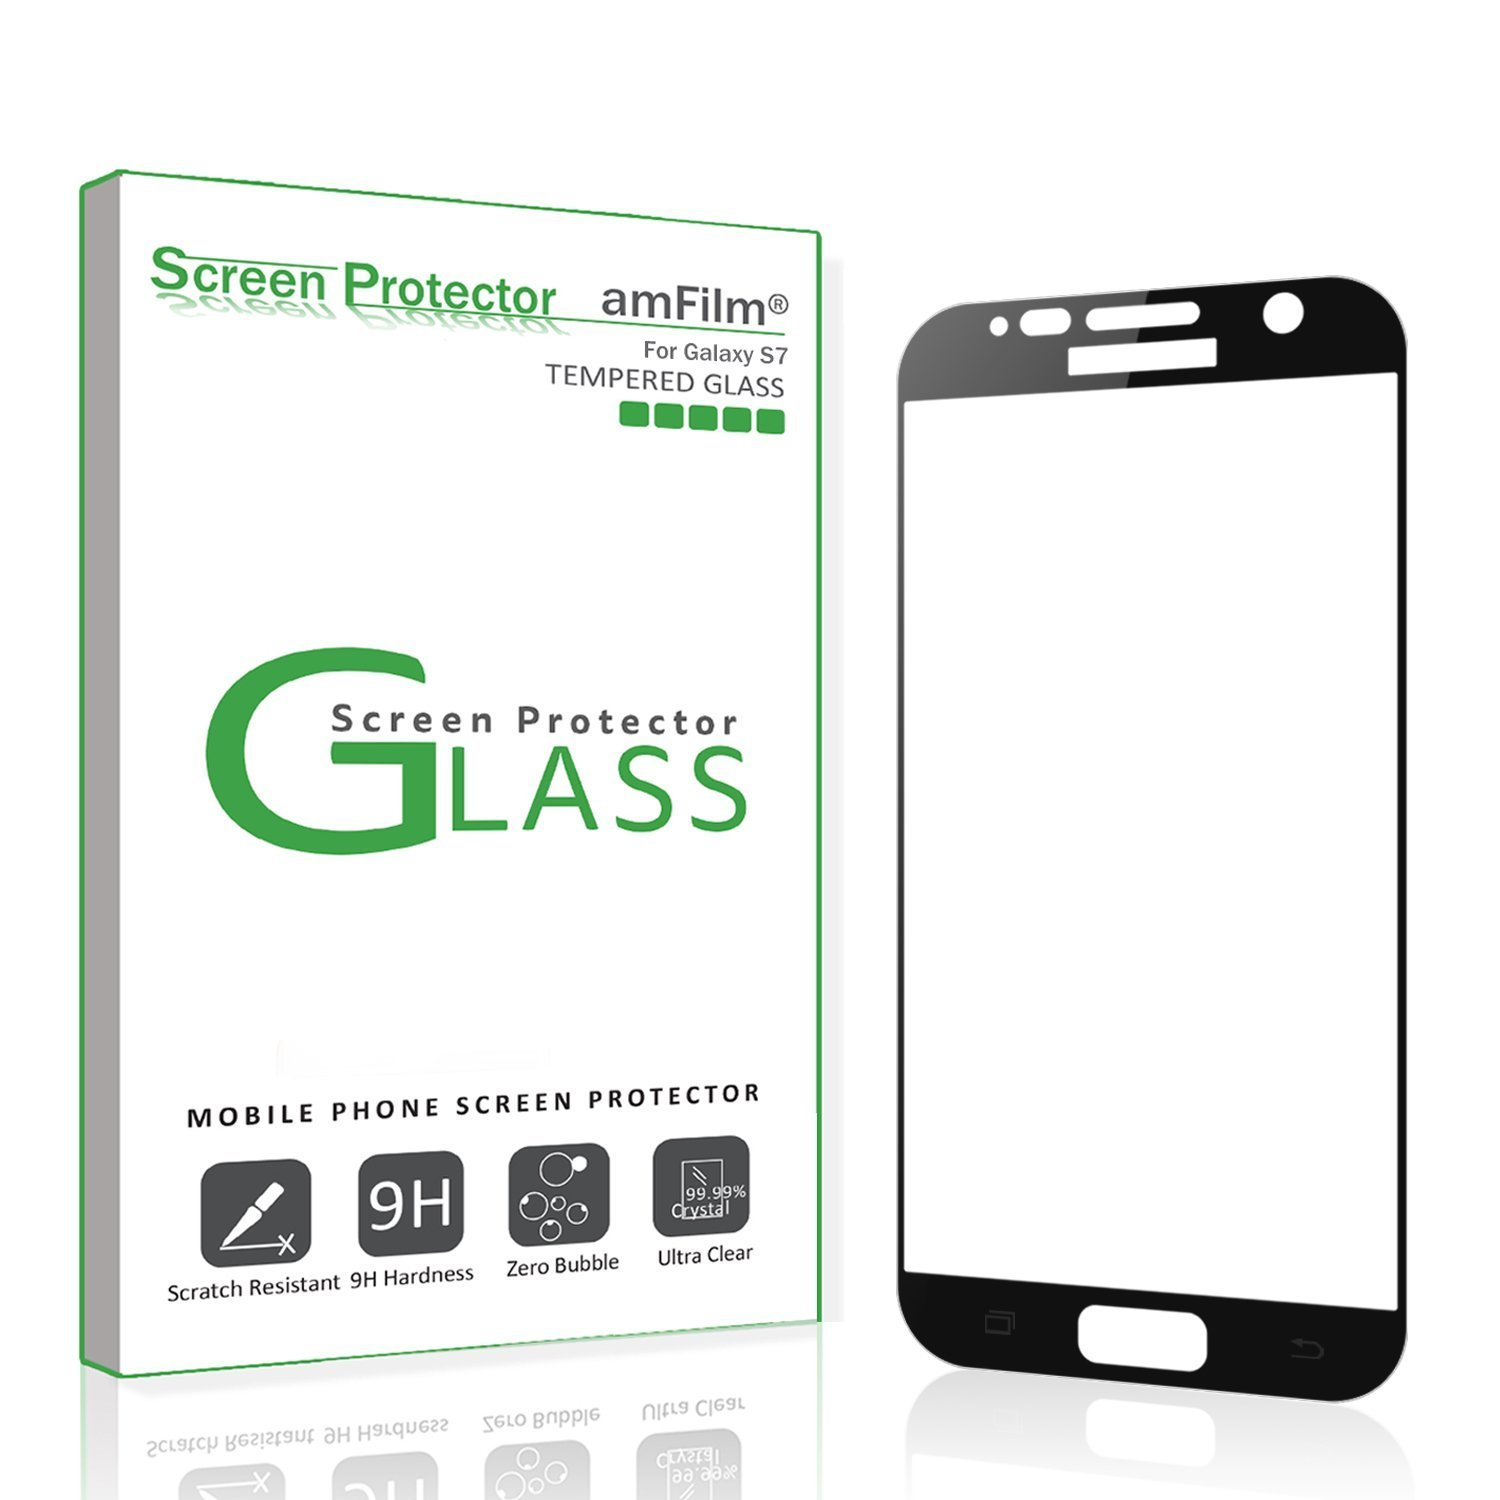 Display Glas Best Screen Protectors For Galaxy S7 Android Central